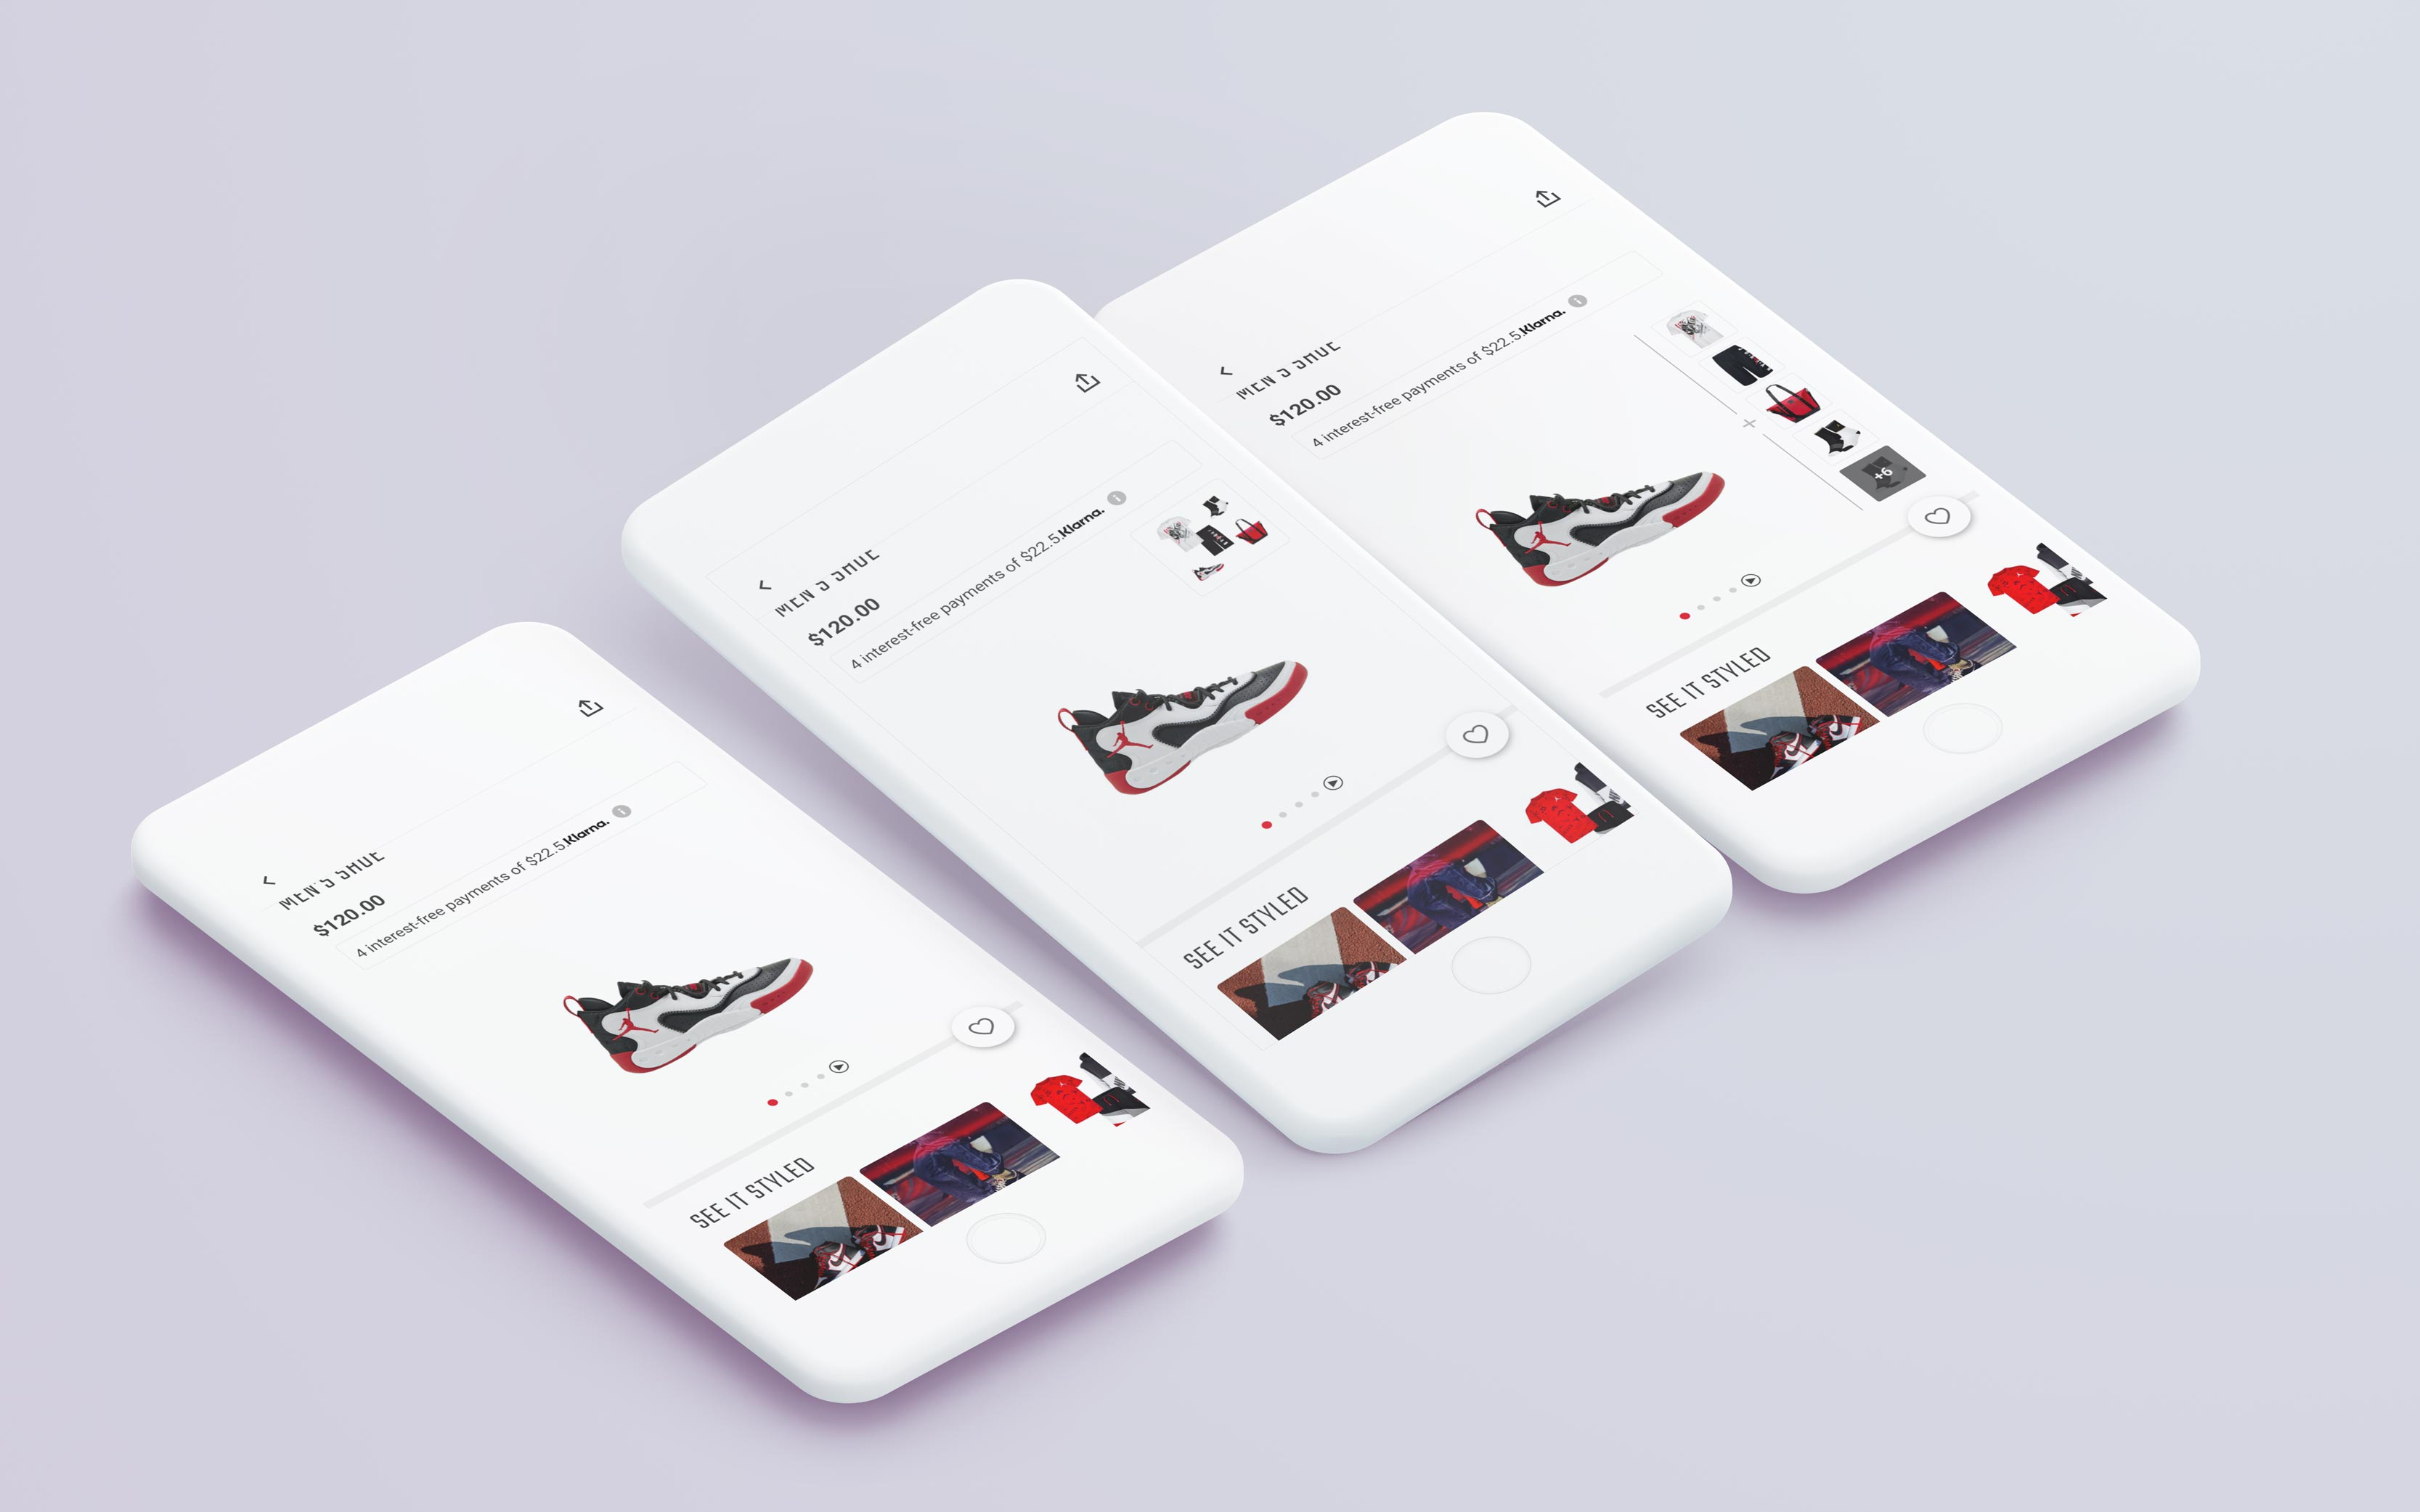 3 versions of the Product Detail Page with different outfit placements